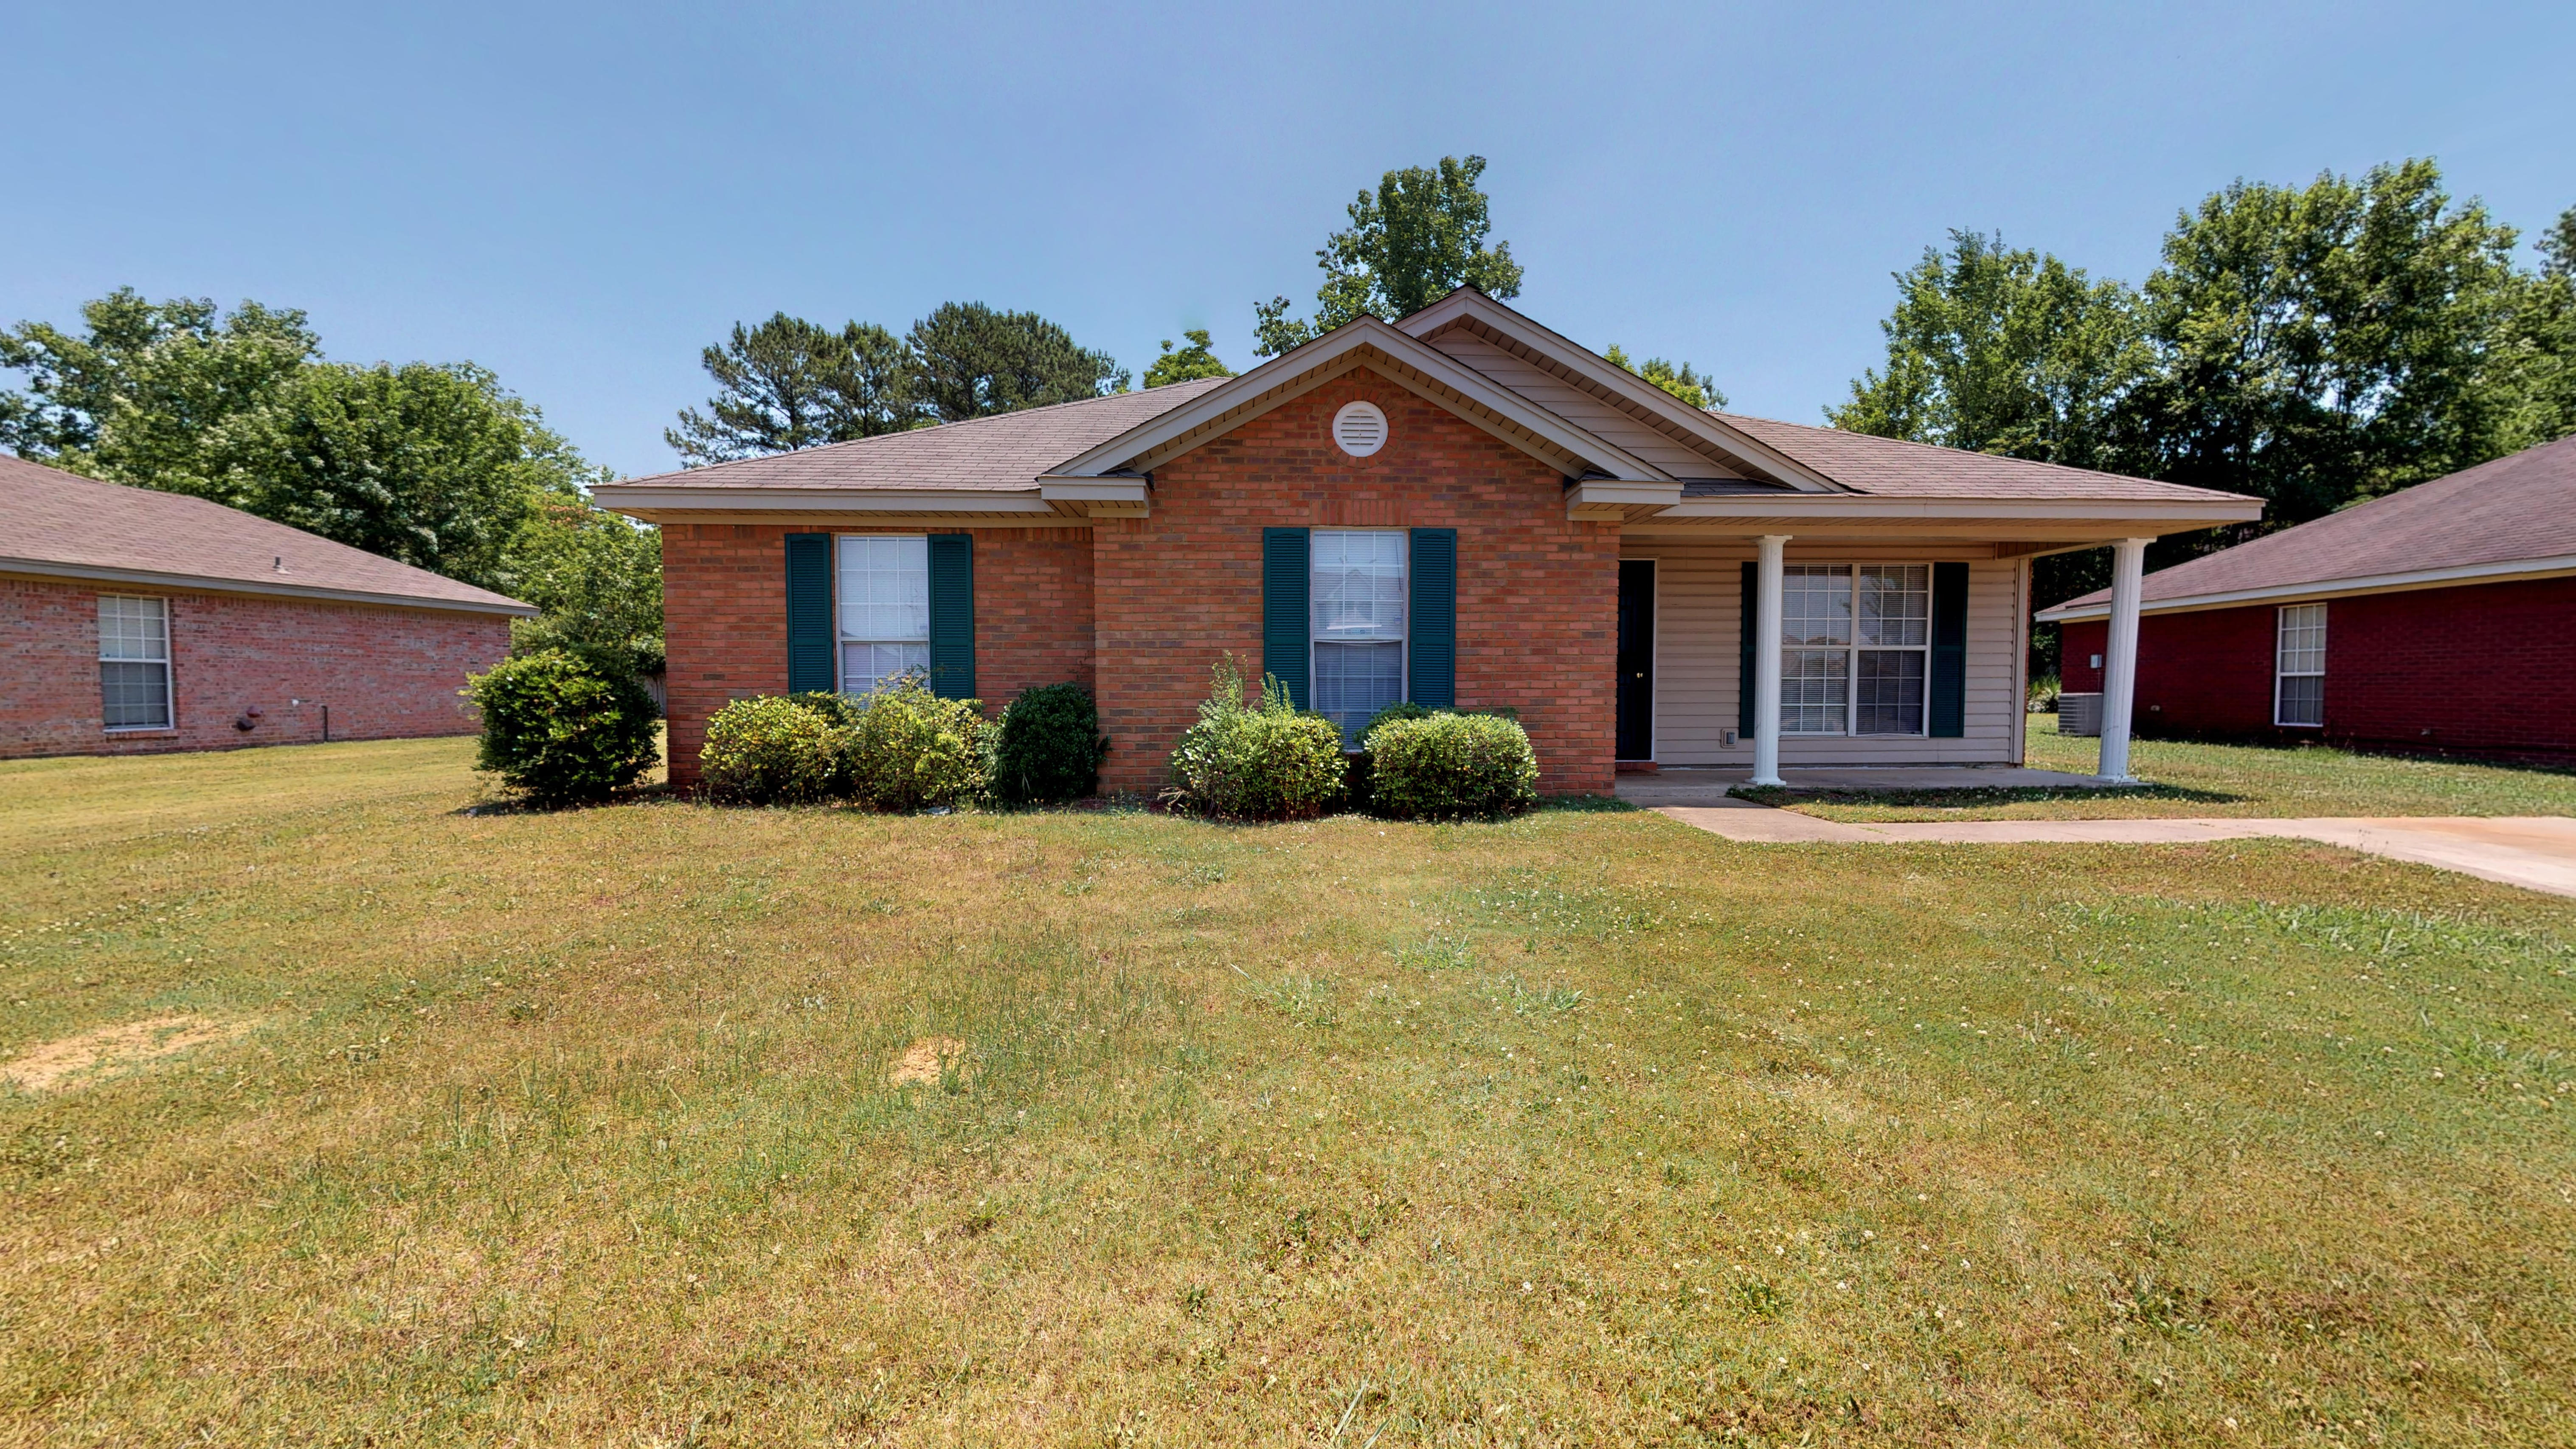 FOR RENT IN MONTGOMERY! 3 BED 2 BATH AT 4124 FITZPATRICK BLVD